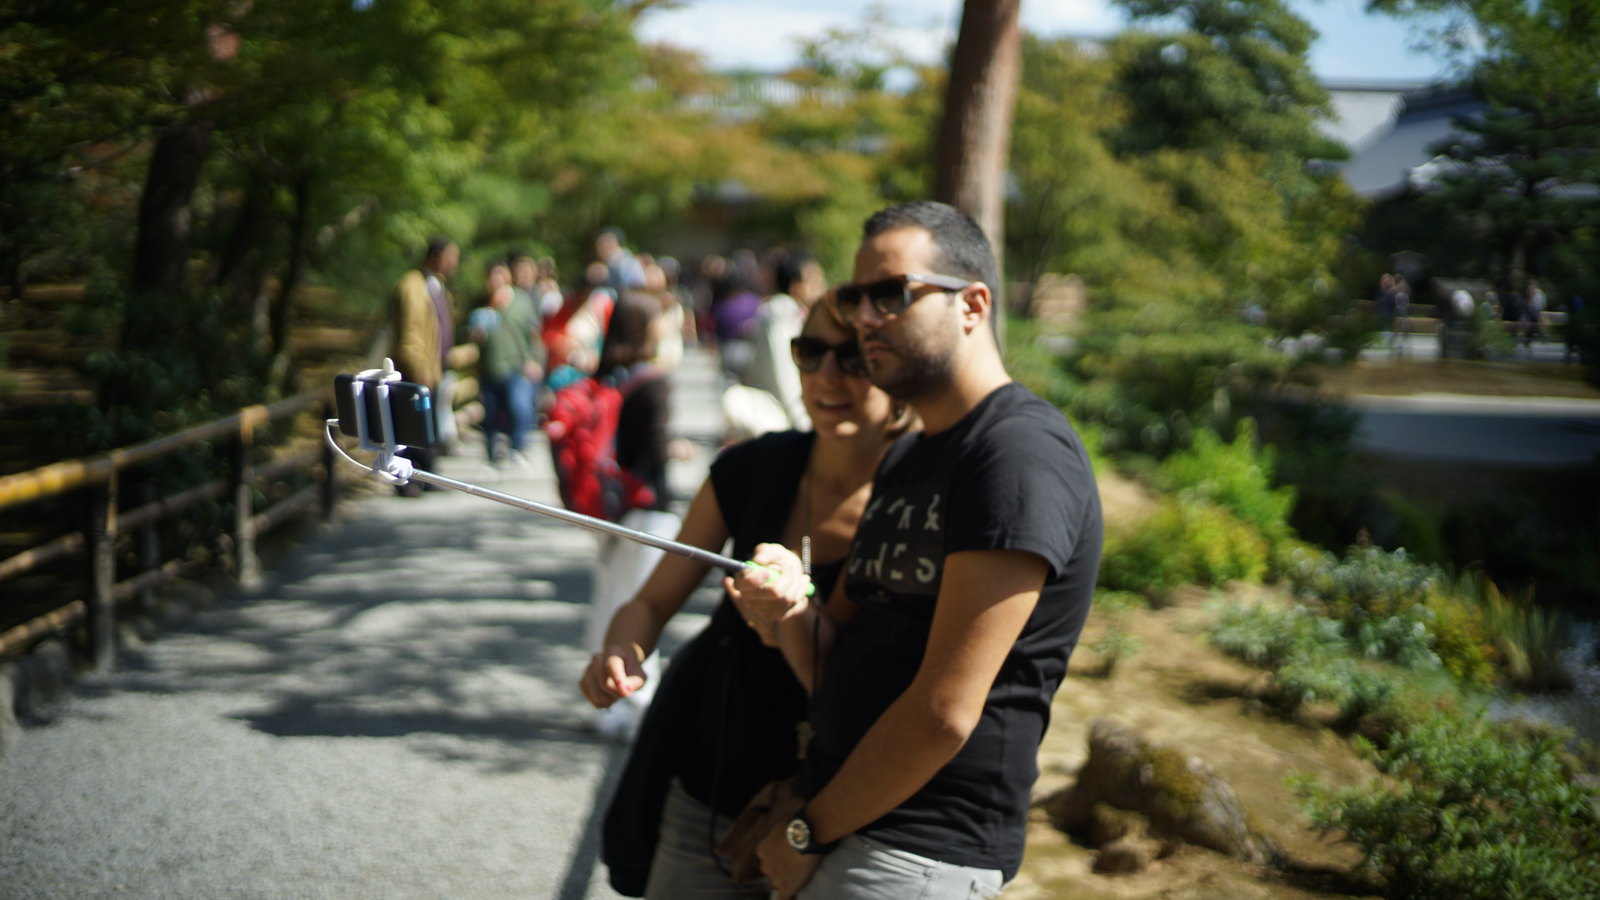 Hold onto your dick when you use your selfie stick. #Kyoto #kinkakujii #Voigtlander40mm #SonyA7 #foto #japan15